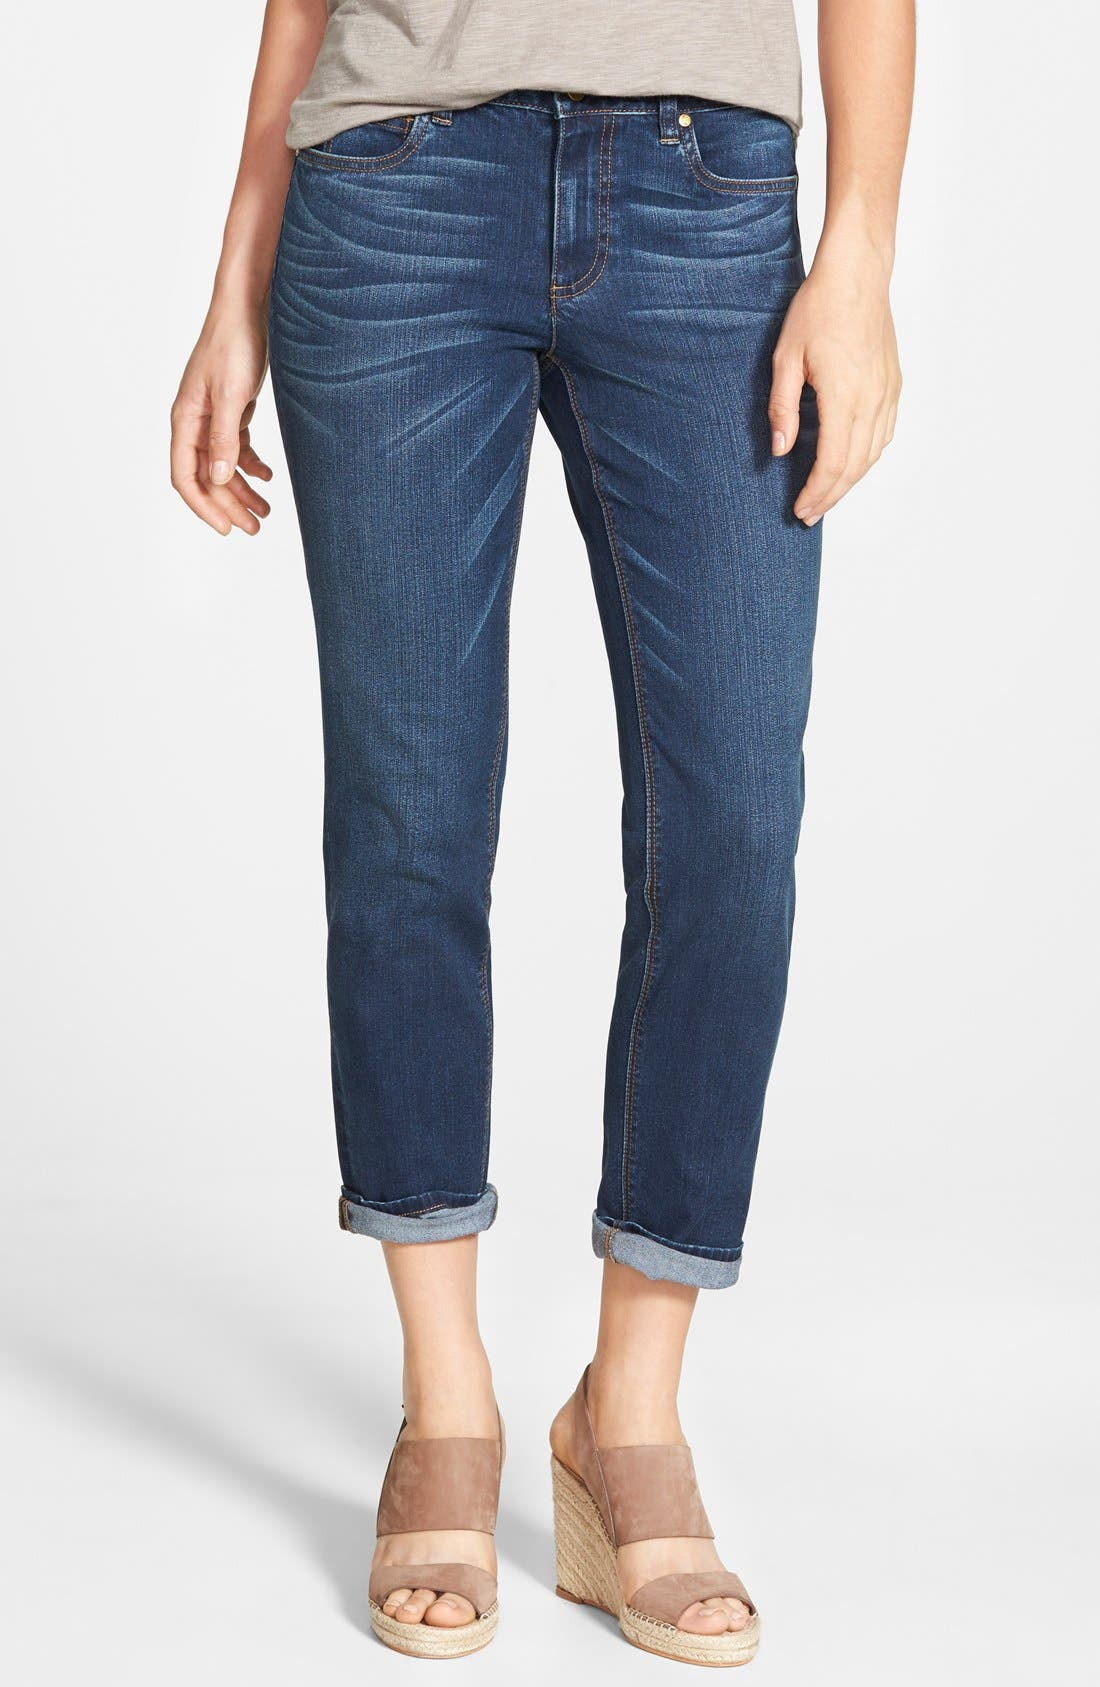 Main Image - Two by Vince Camuto Stretch Boyfriend Jeans (Authentic)